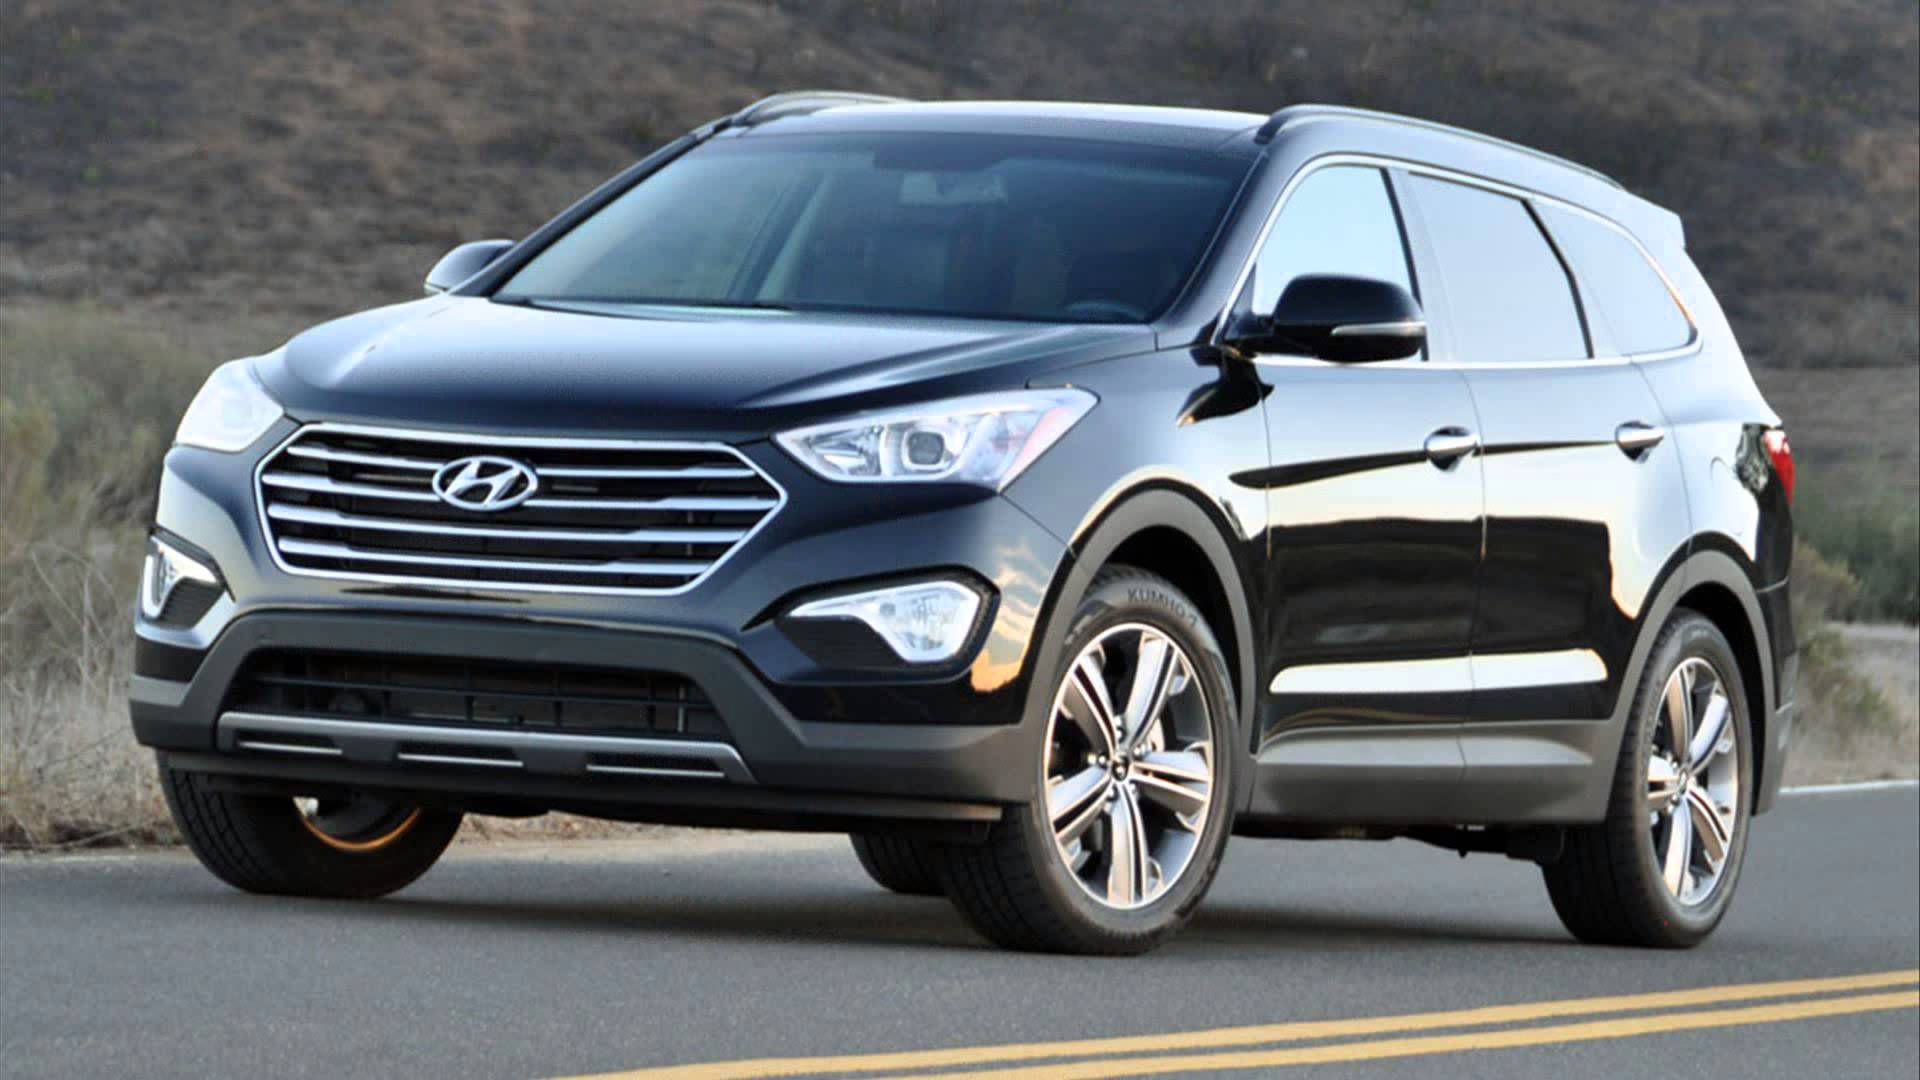 hyundai unleashes large suv for 2015. Black Bedroom Furniture Sets. Home Design Ideas